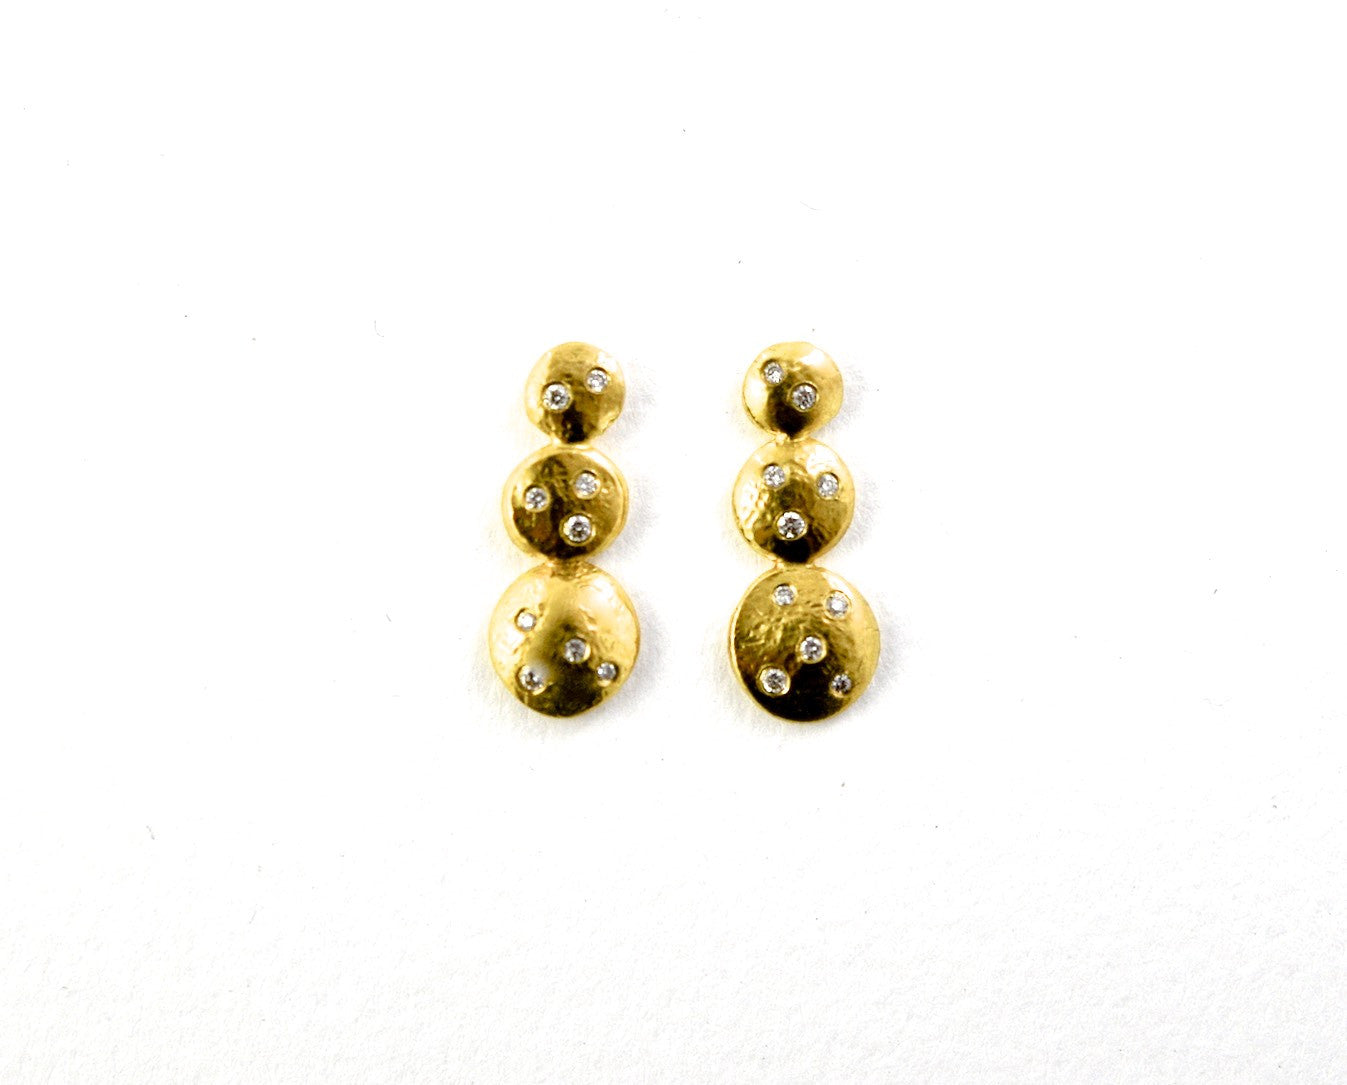 earrings / gold hammered 22k  graduated discs + diamonds